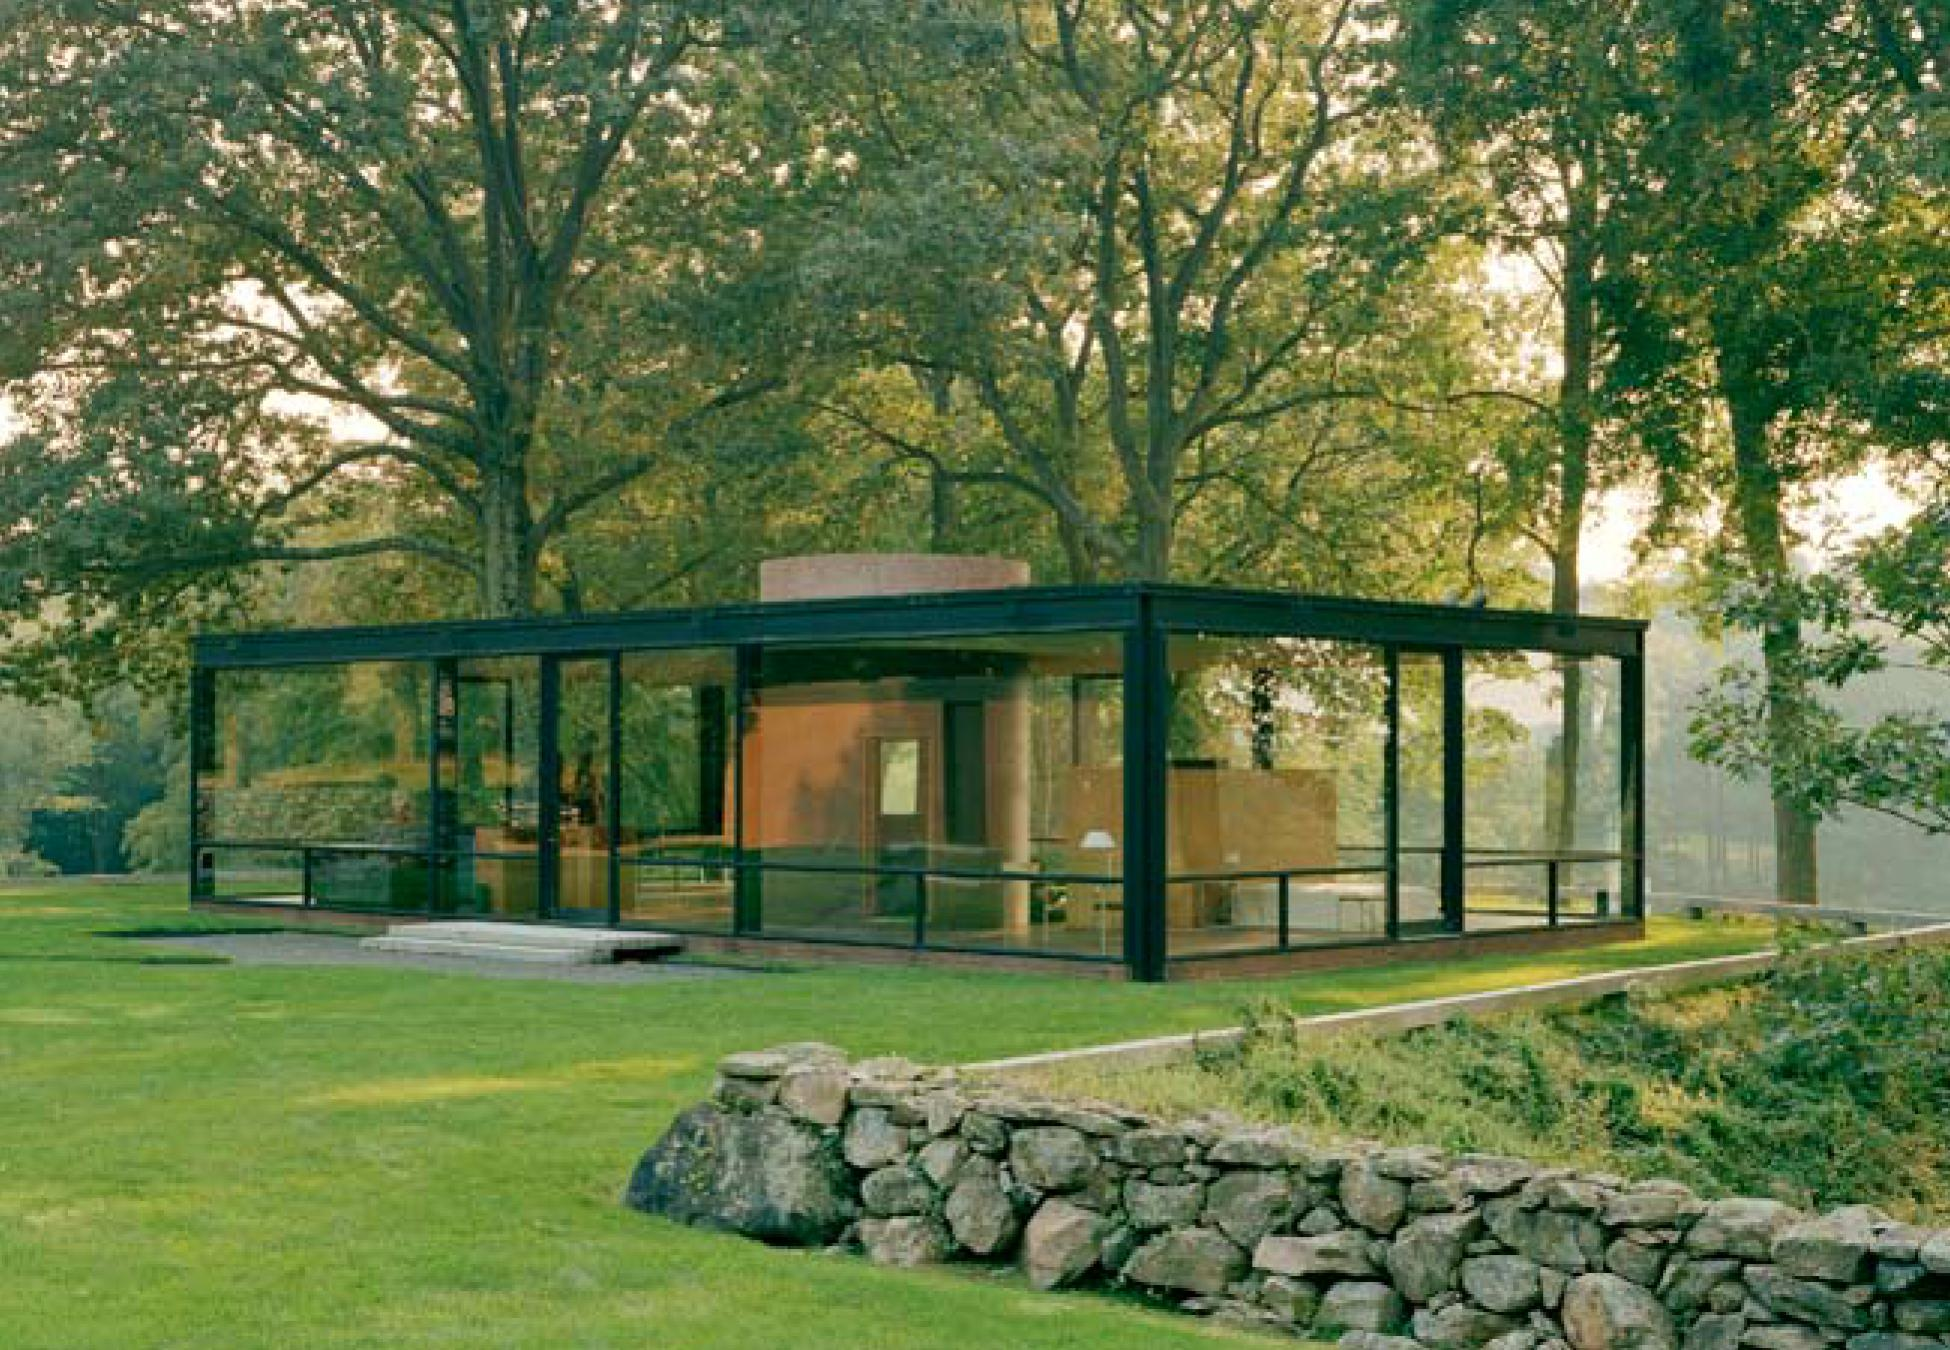 Johnson y la glass house new canaam 1949 hyperbole for Stone and glass house designs